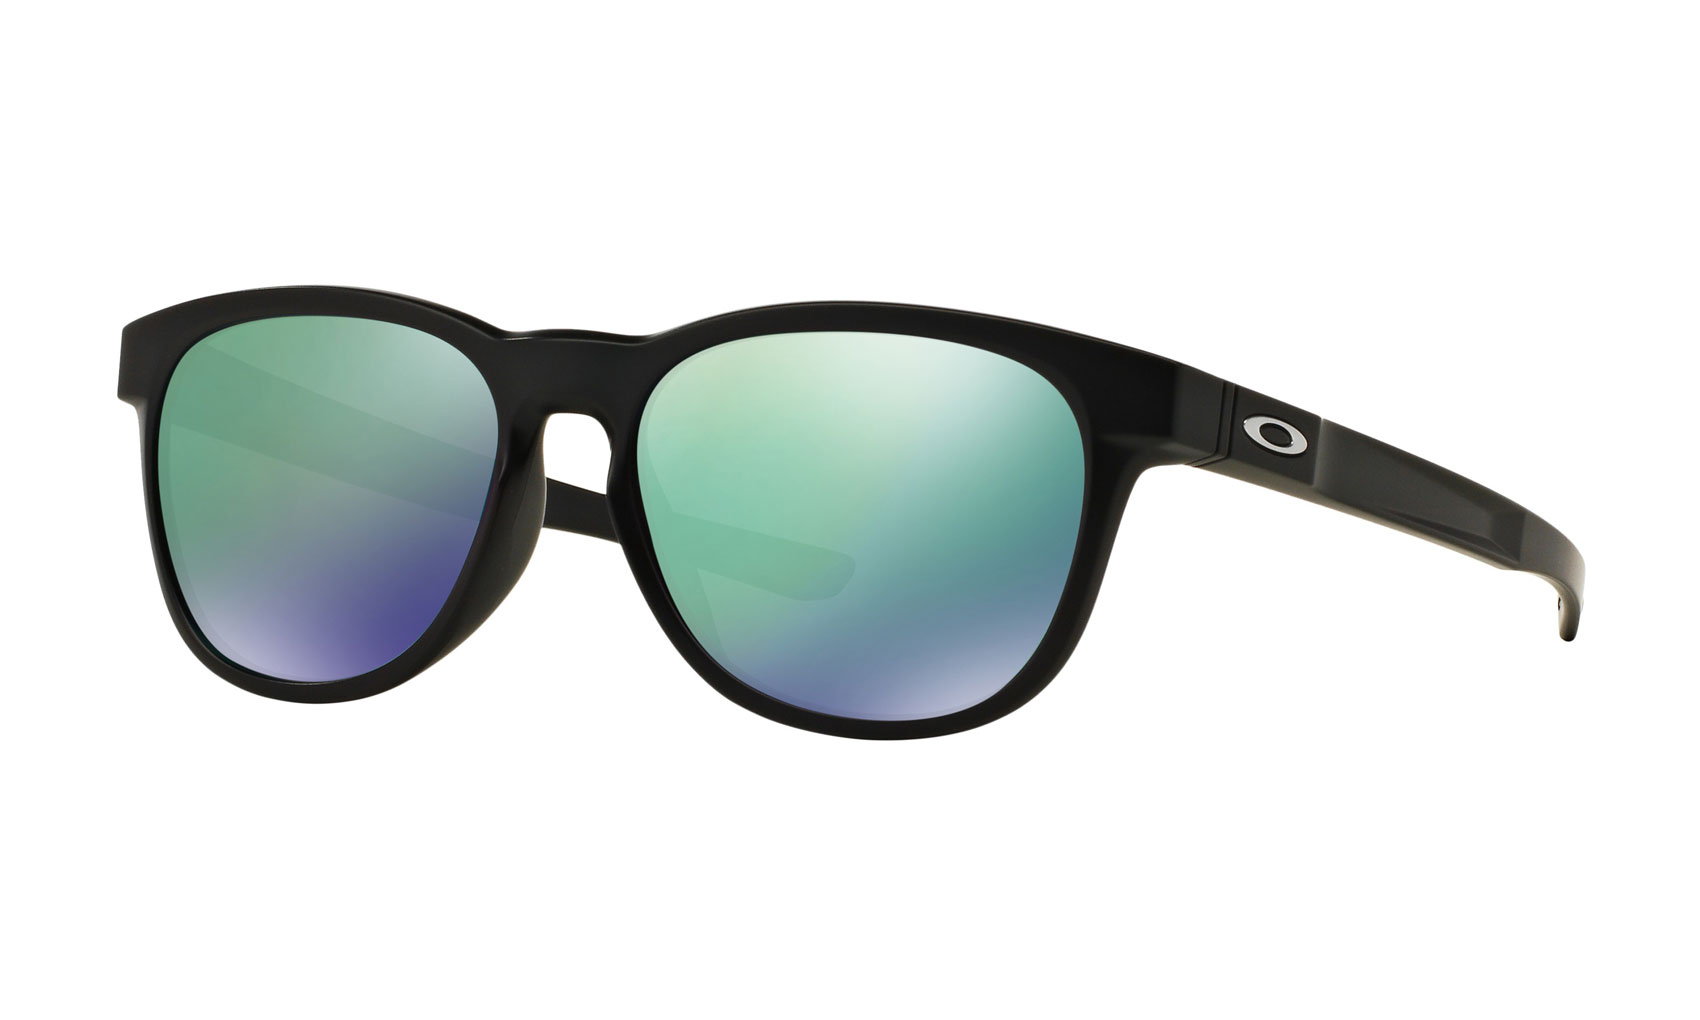 5548fbb2a6 Oakley Stringer Sunglasses Matte Black Jade Iridium